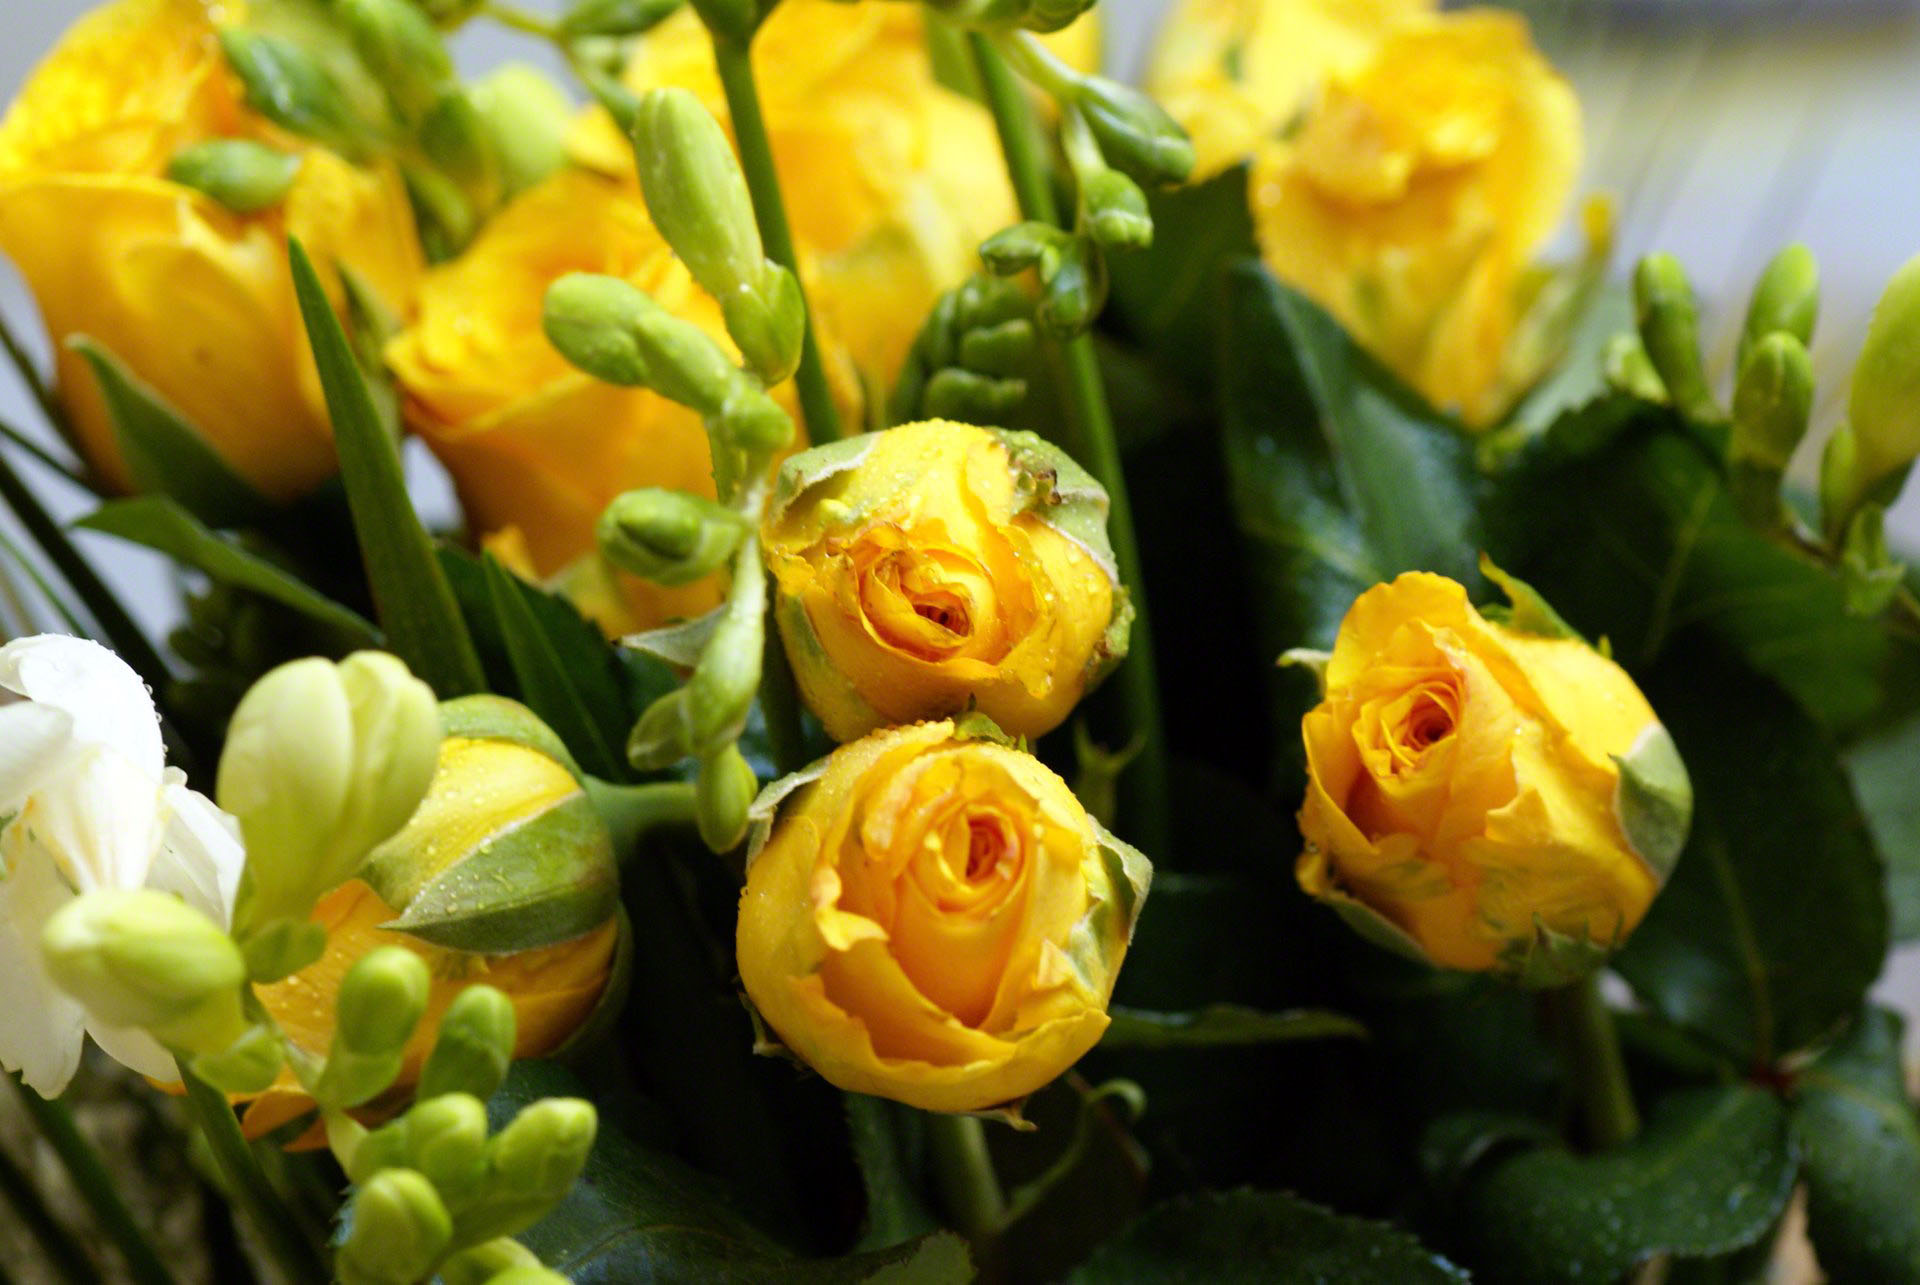 http://www.fabiovisentin.com/photography/photo/12/yellow-roses-bouquet-00884.jpg